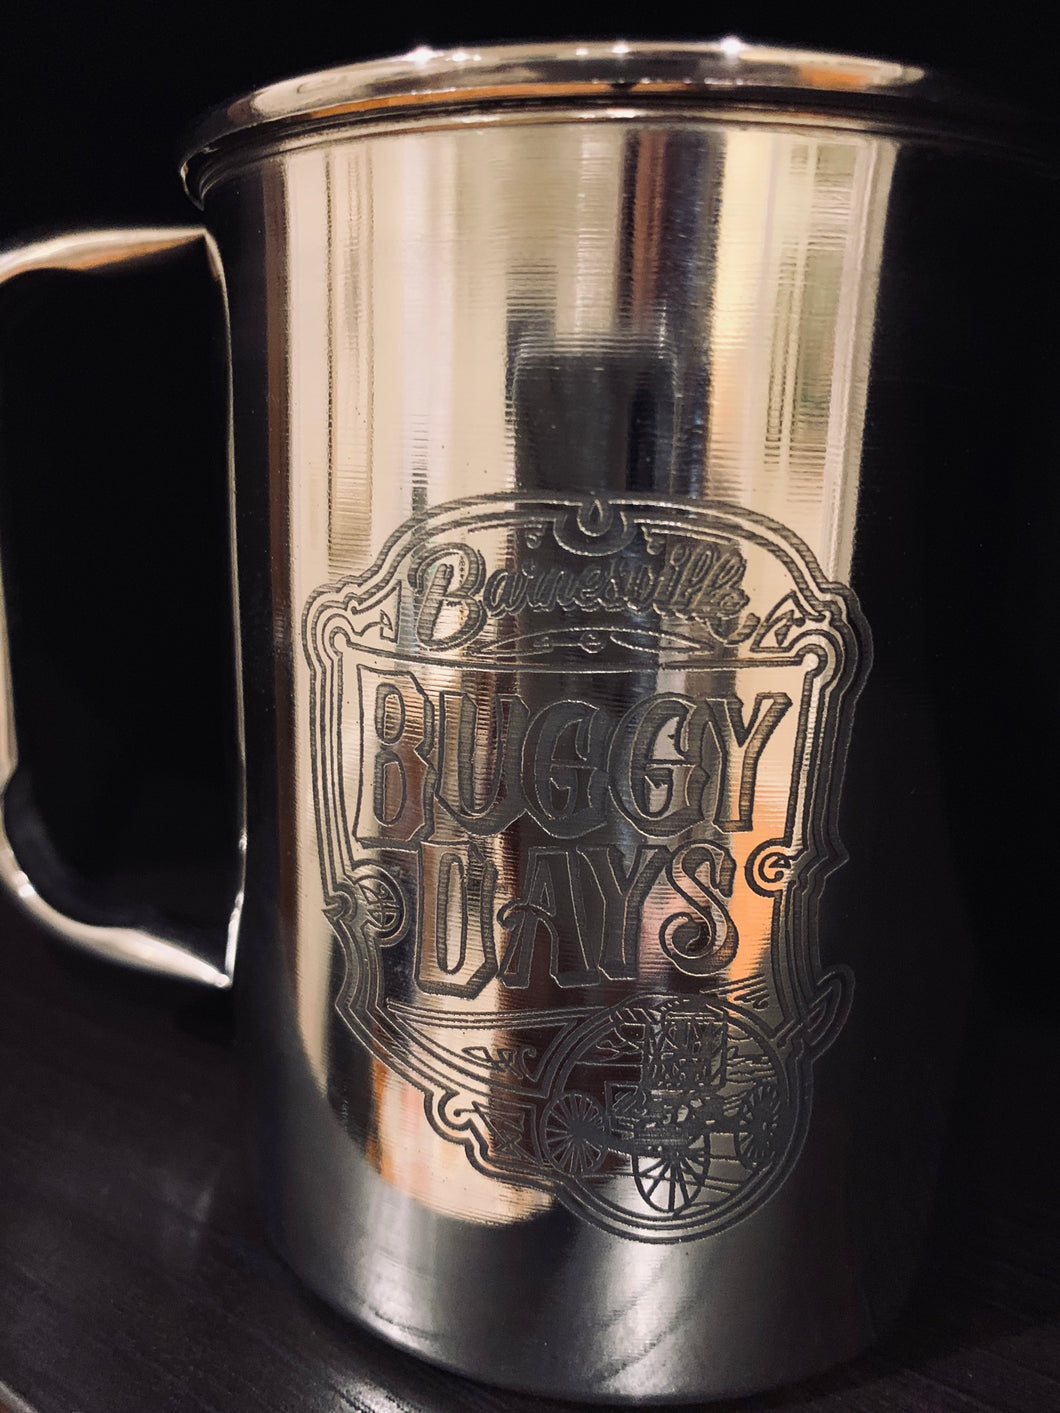 Stainless Steel Mugs - Buggy Days